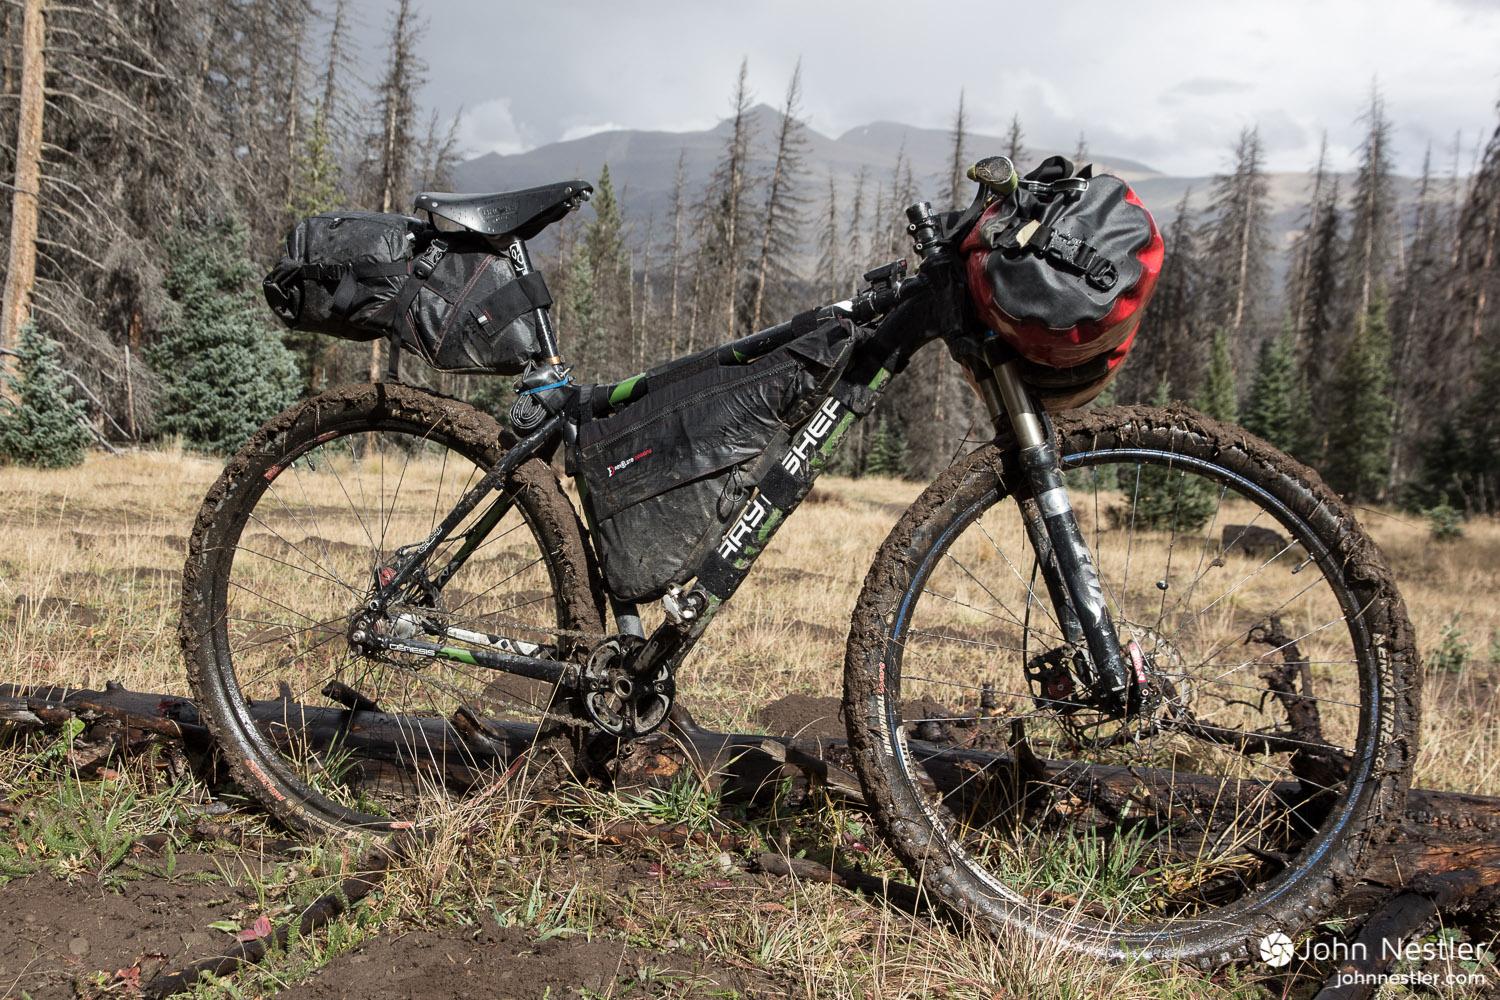 Brief bursts of rain turned the exposed earth into tacky mud that clung to the tires and prevented any type of riding. Shot shortly after  Spring Creek Pass  in Segment 22.